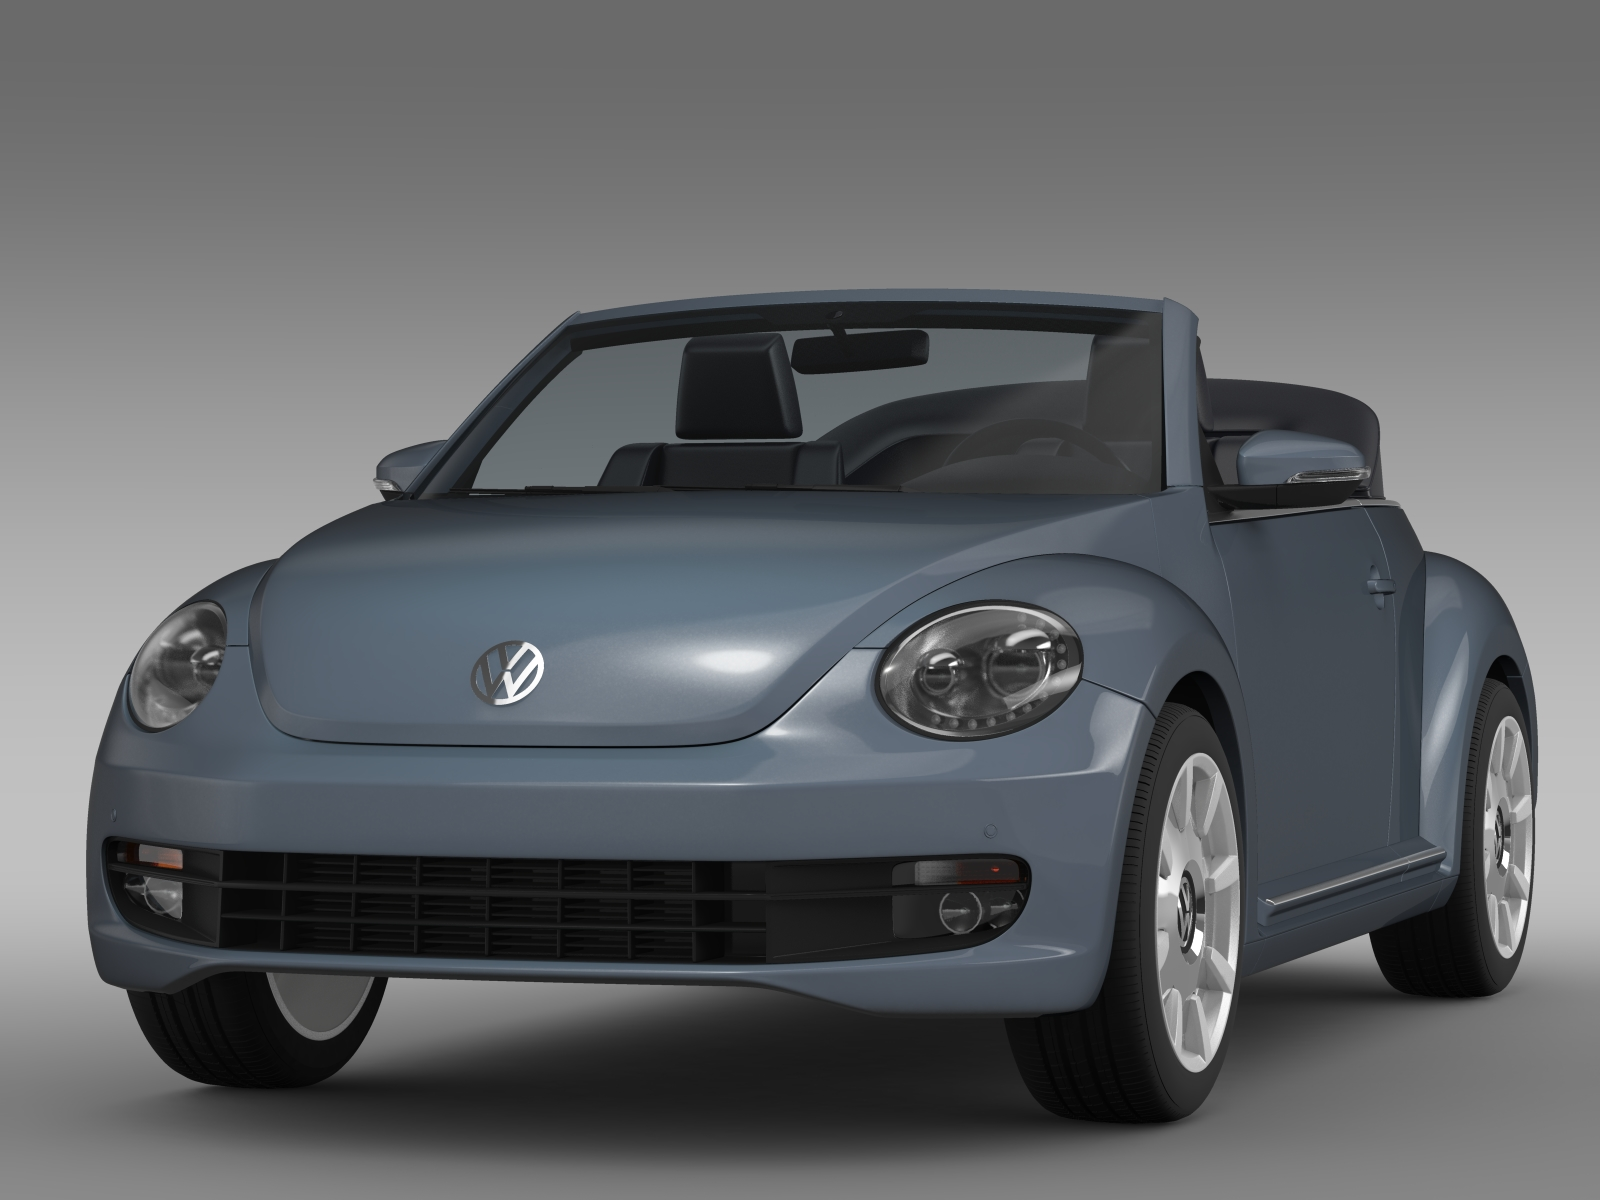 vw beetle cabriolet denim concept 2015 3d model. Black Bedroom Furniture Sets. Home Design Ideas